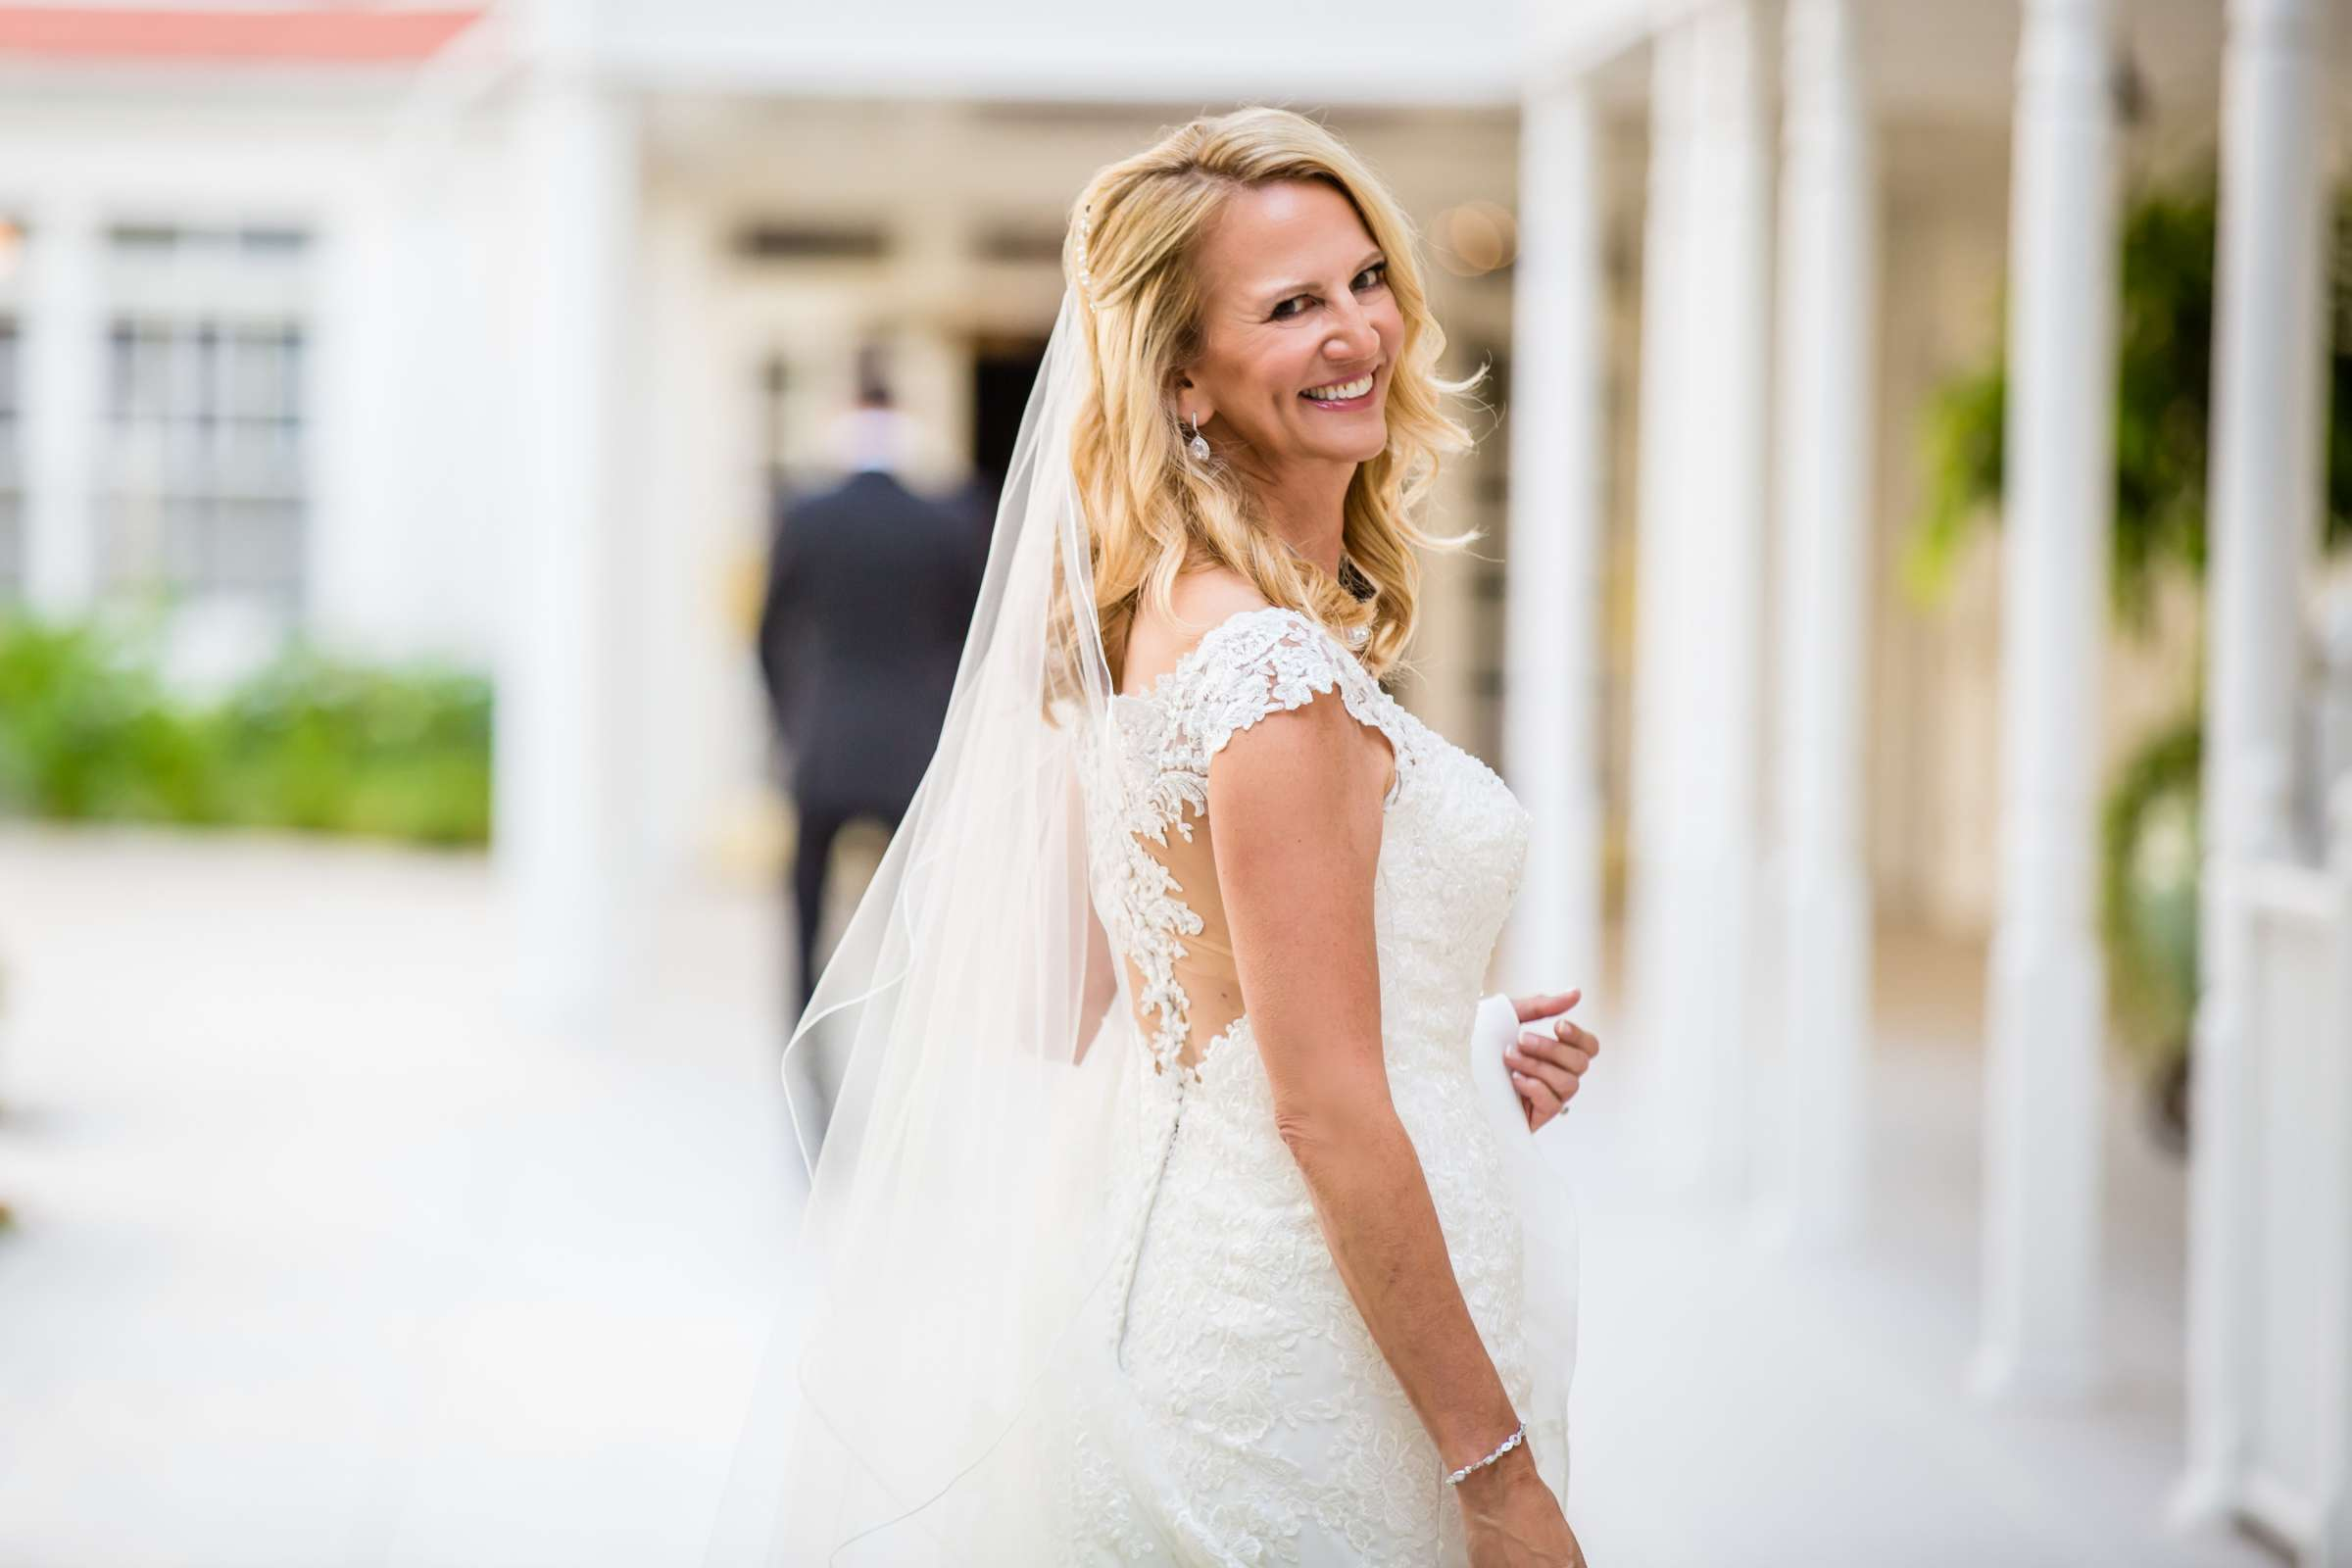 Hotel Del Coronado Wedding coordinated by Creative Affairs Inc, Diane and Paul Wedding Photo #46 by True Photography